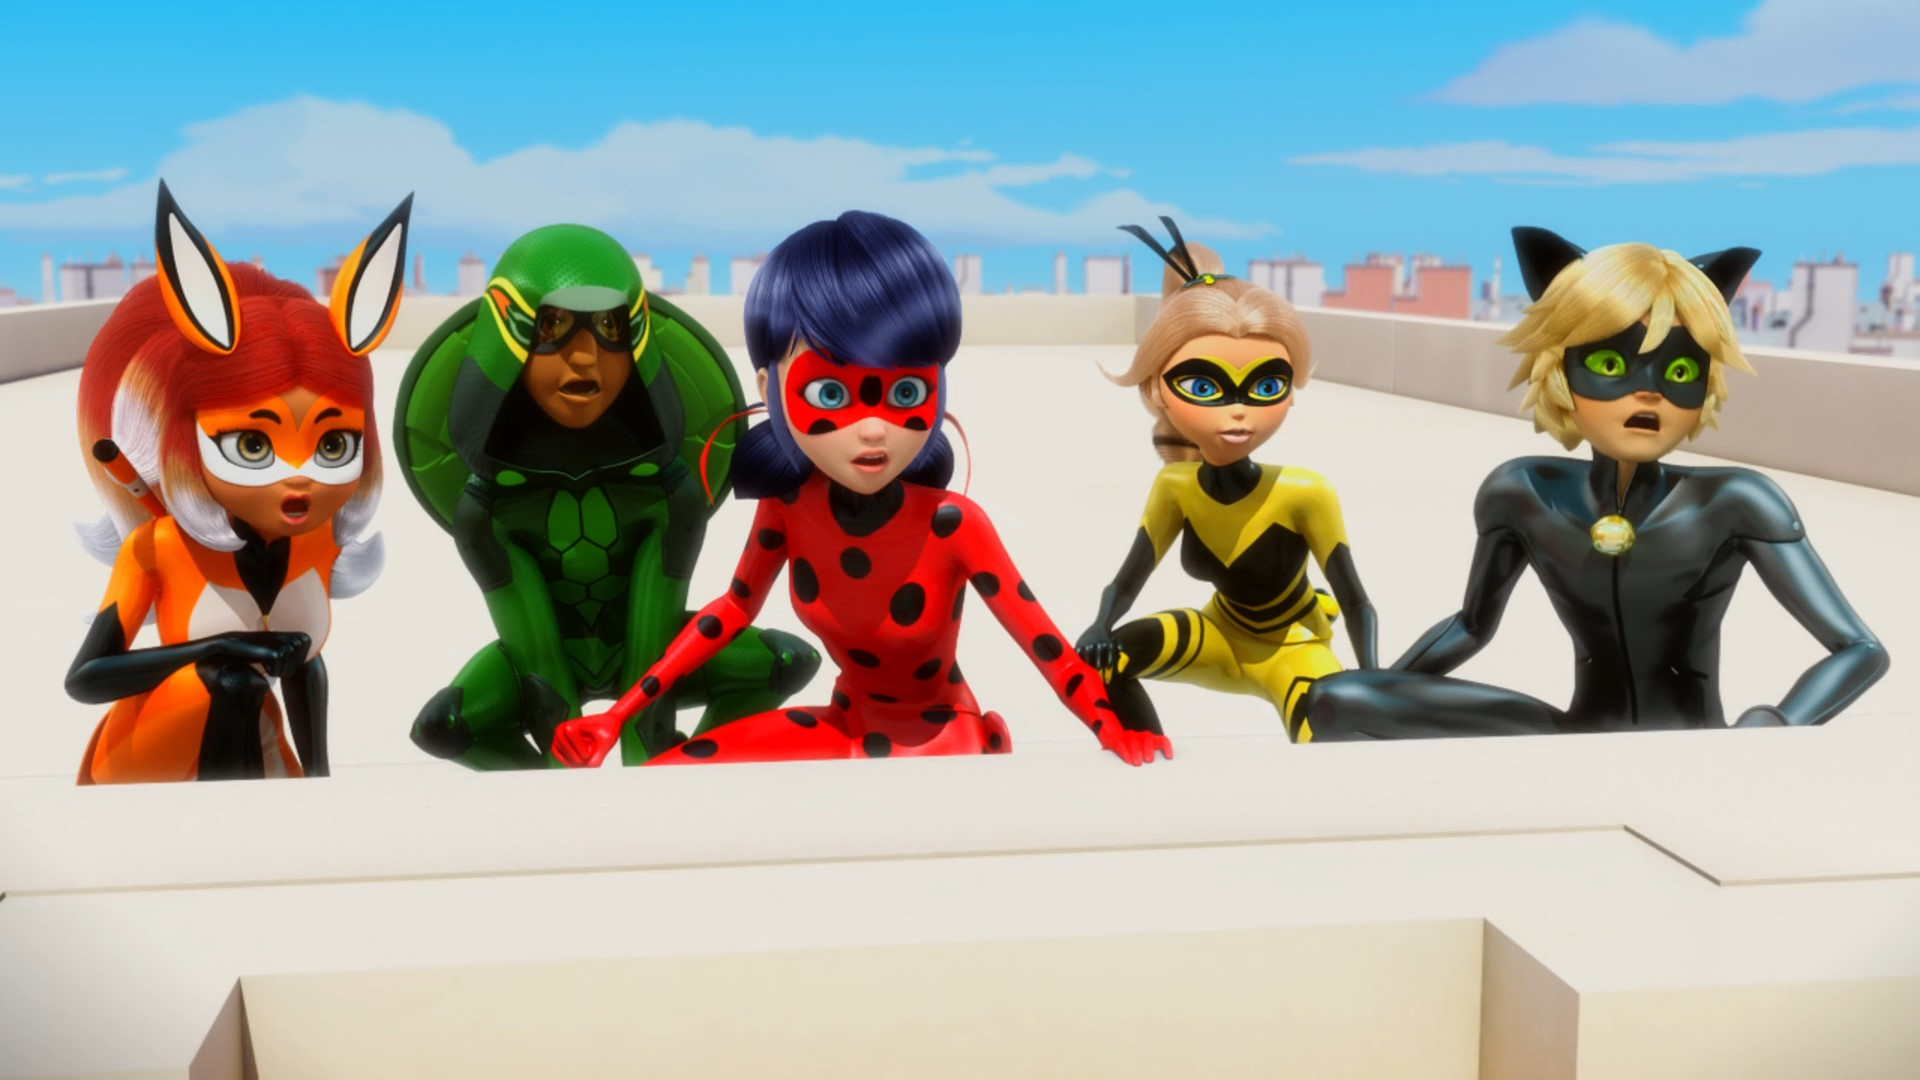 miraculous tales of ladybug & cat noir season 1 episode 13 english